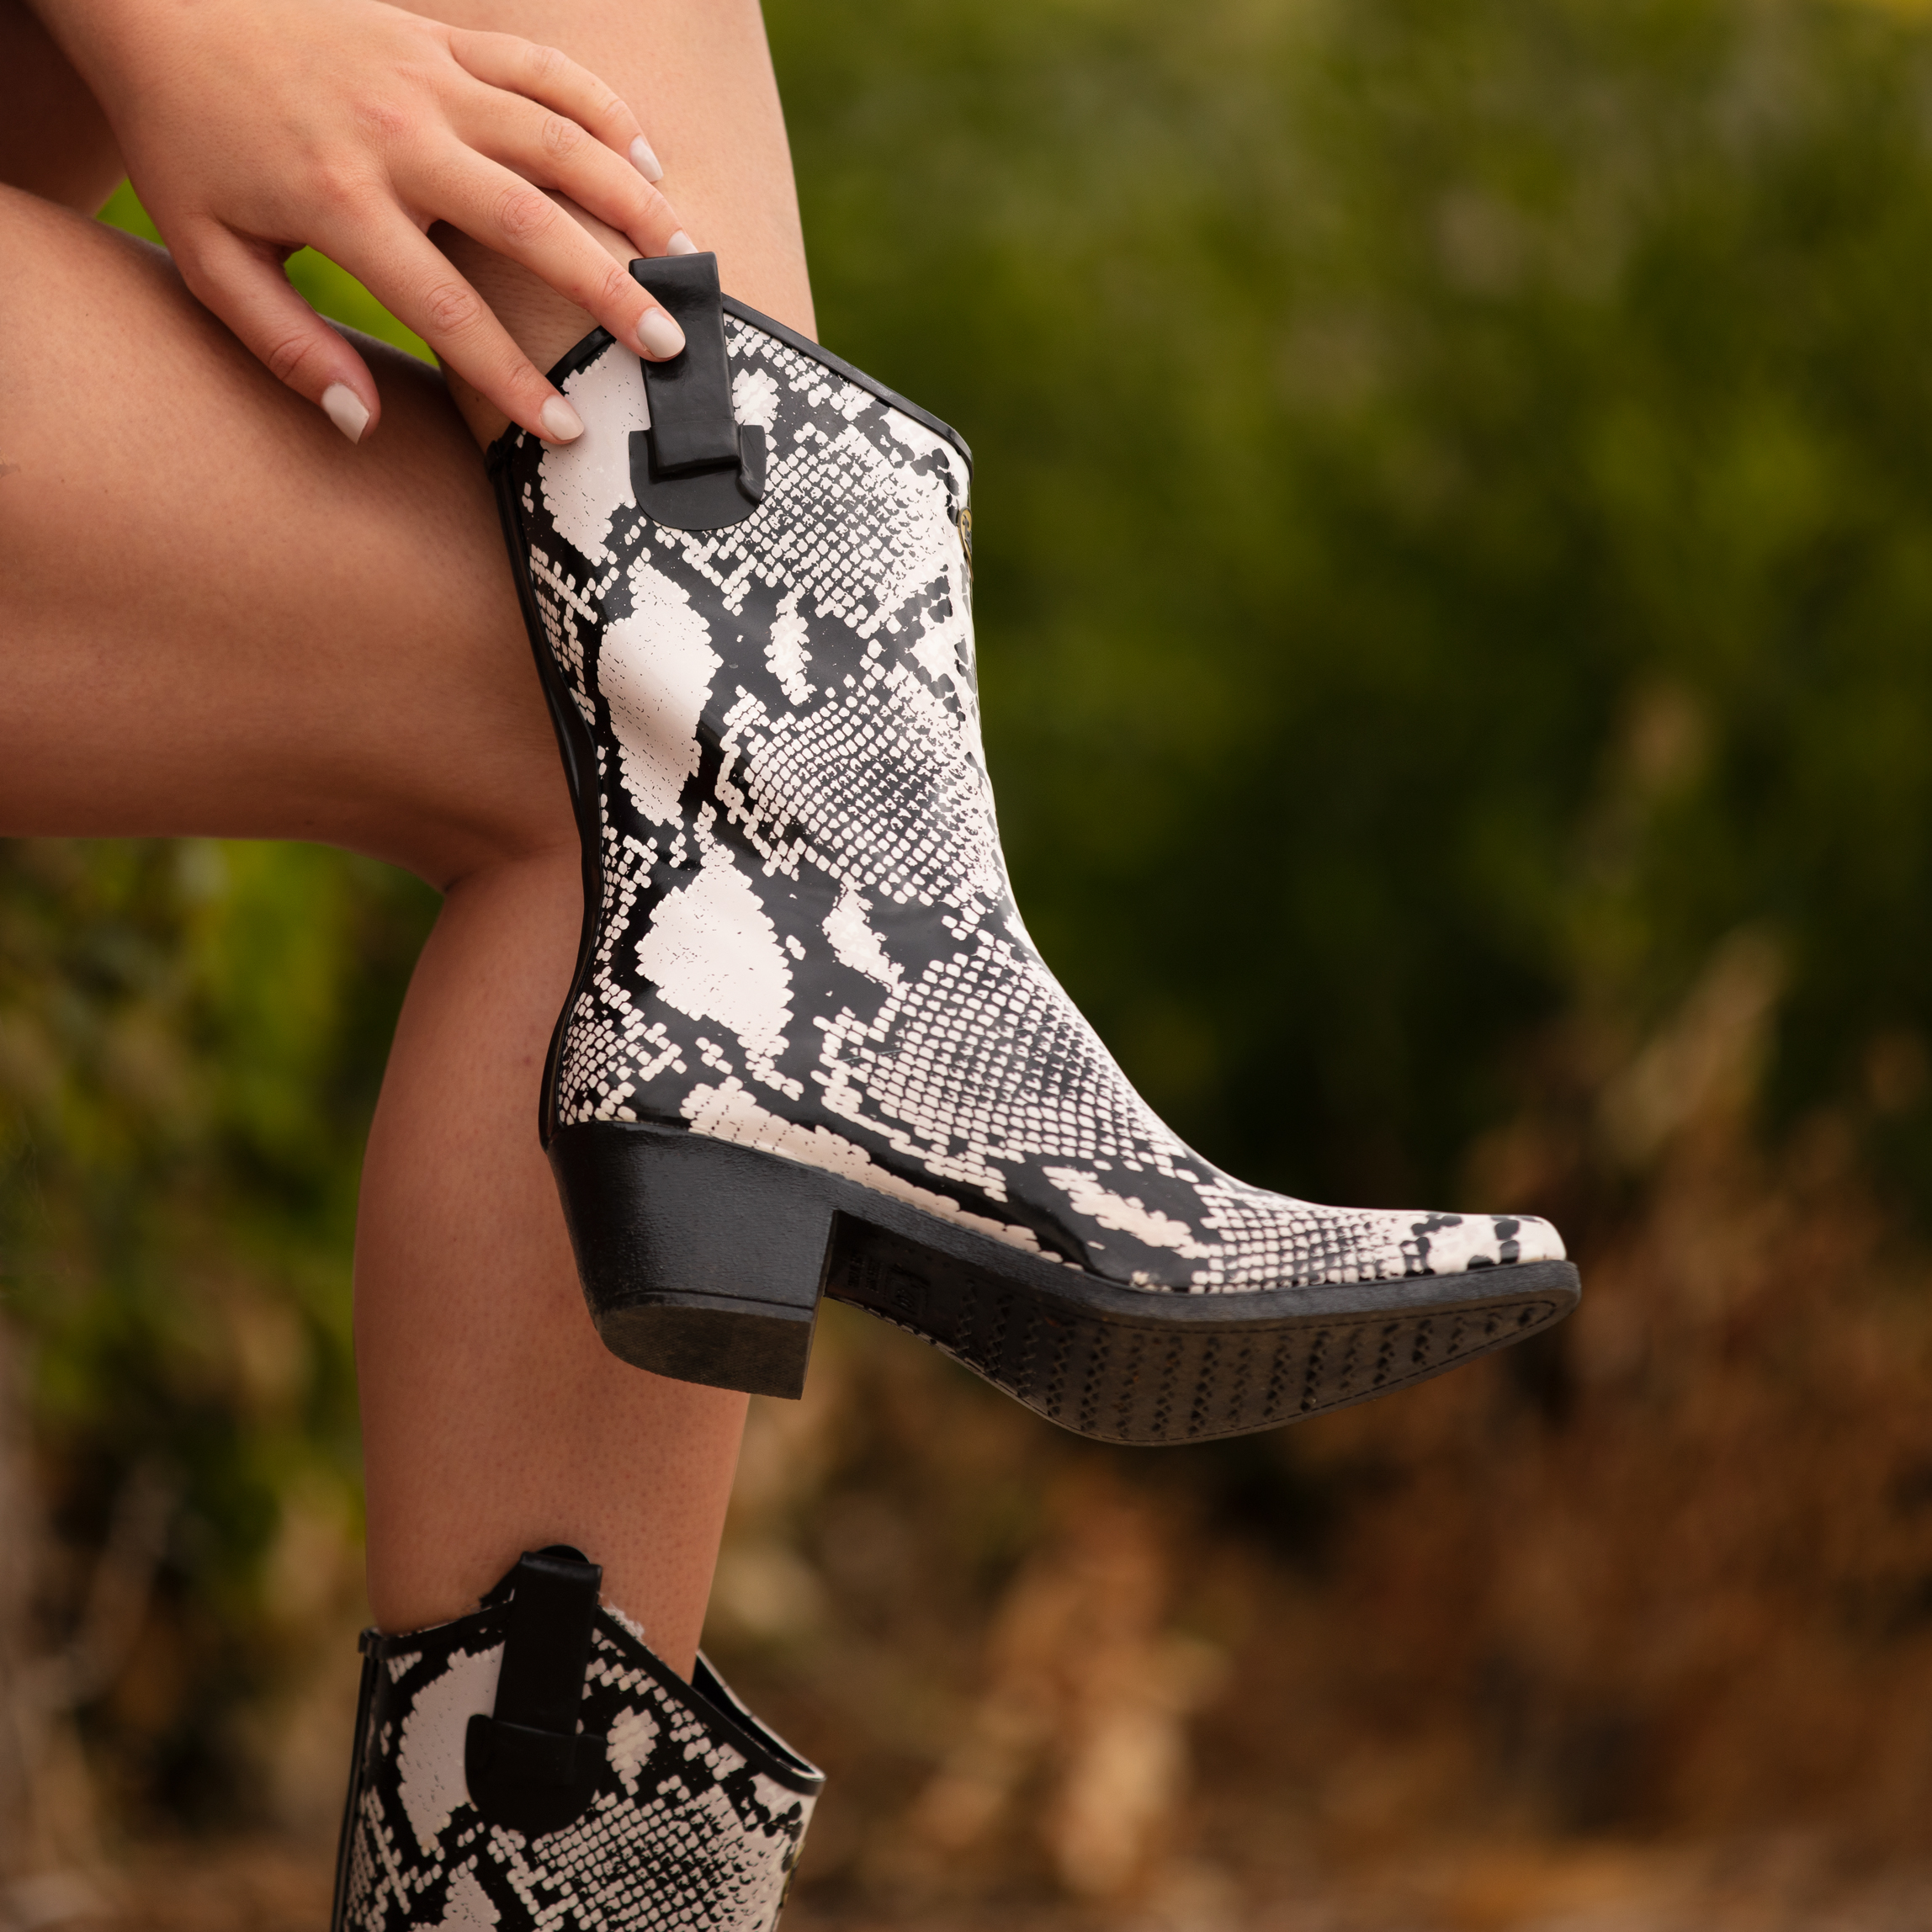 Bandy Snakewelly boot